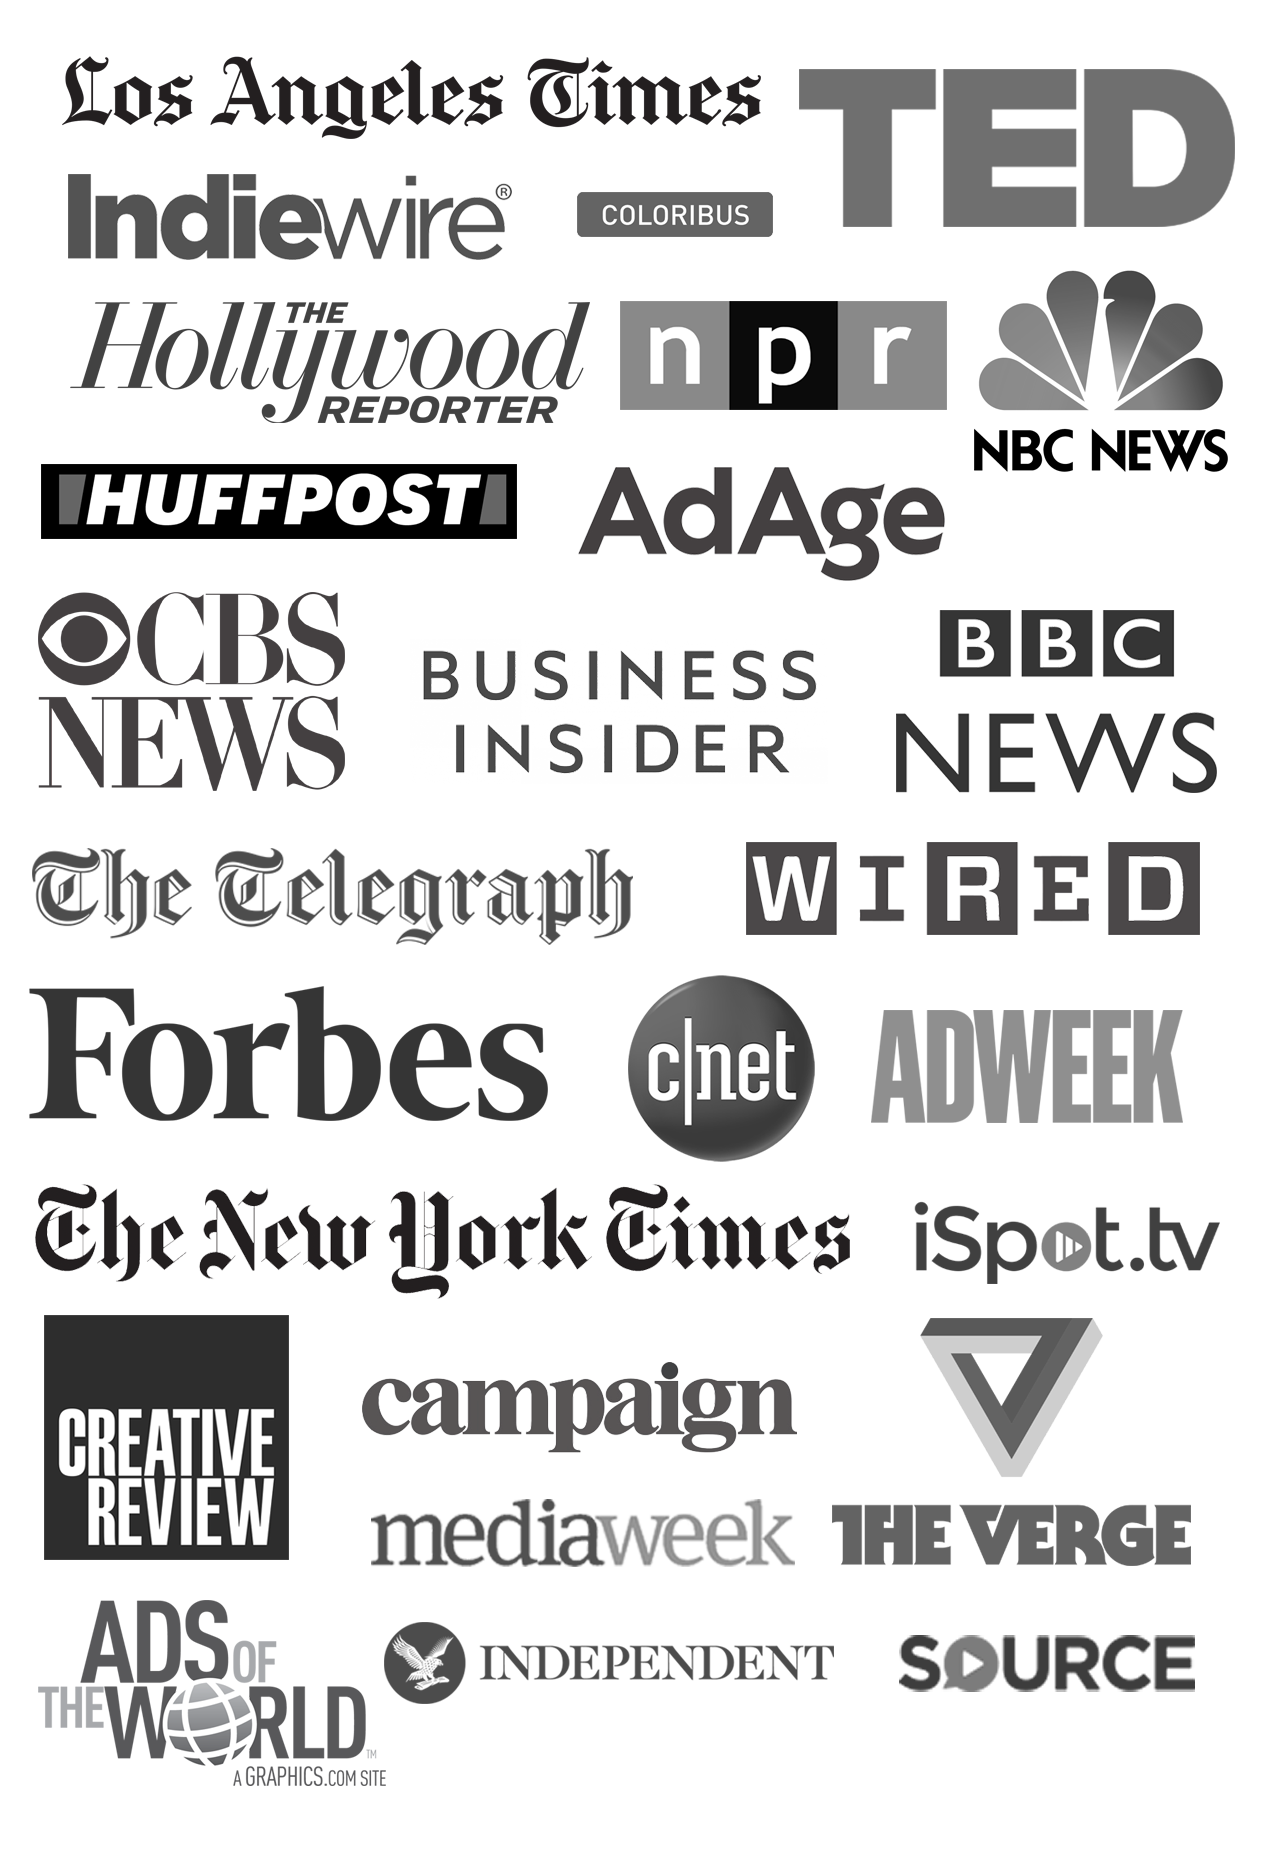 Press coverage - Over the years, my work has been covered by press outlets like Wired, New York Times, BBC, Hollywood Reporter and The Verge among others. For specific articles please click on the press logos in every project.